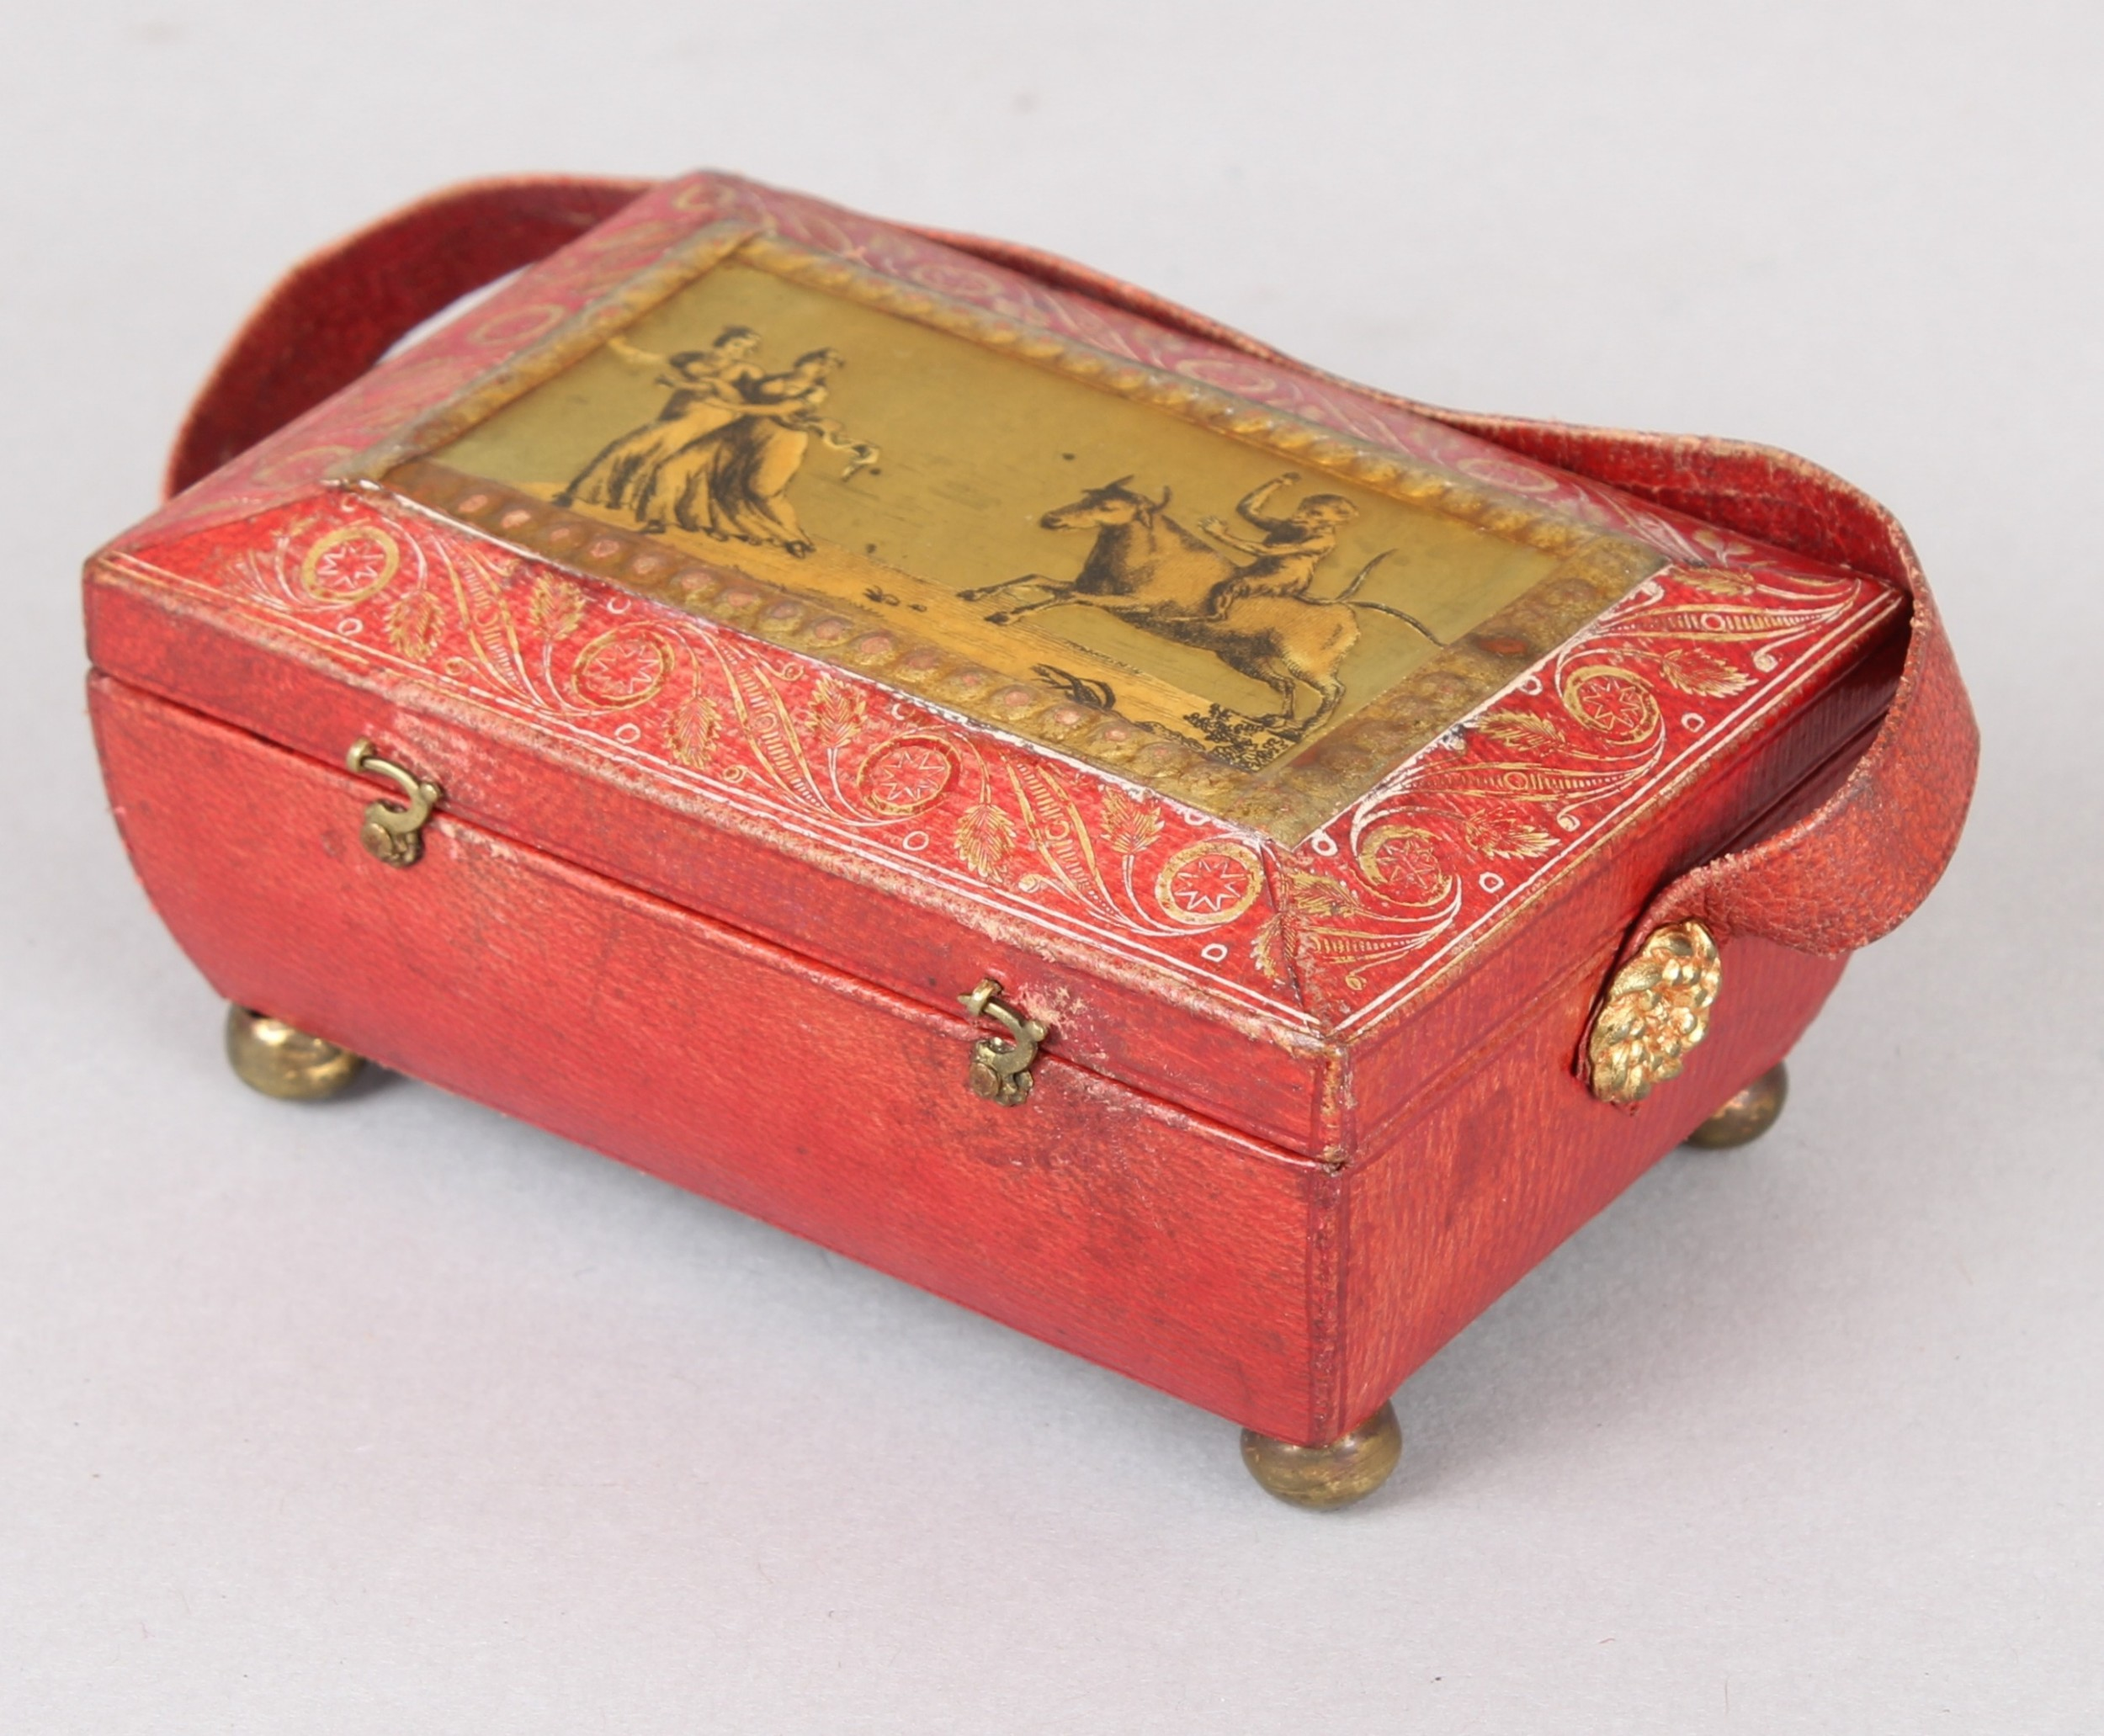 regency red leather and gilt miniature workbox